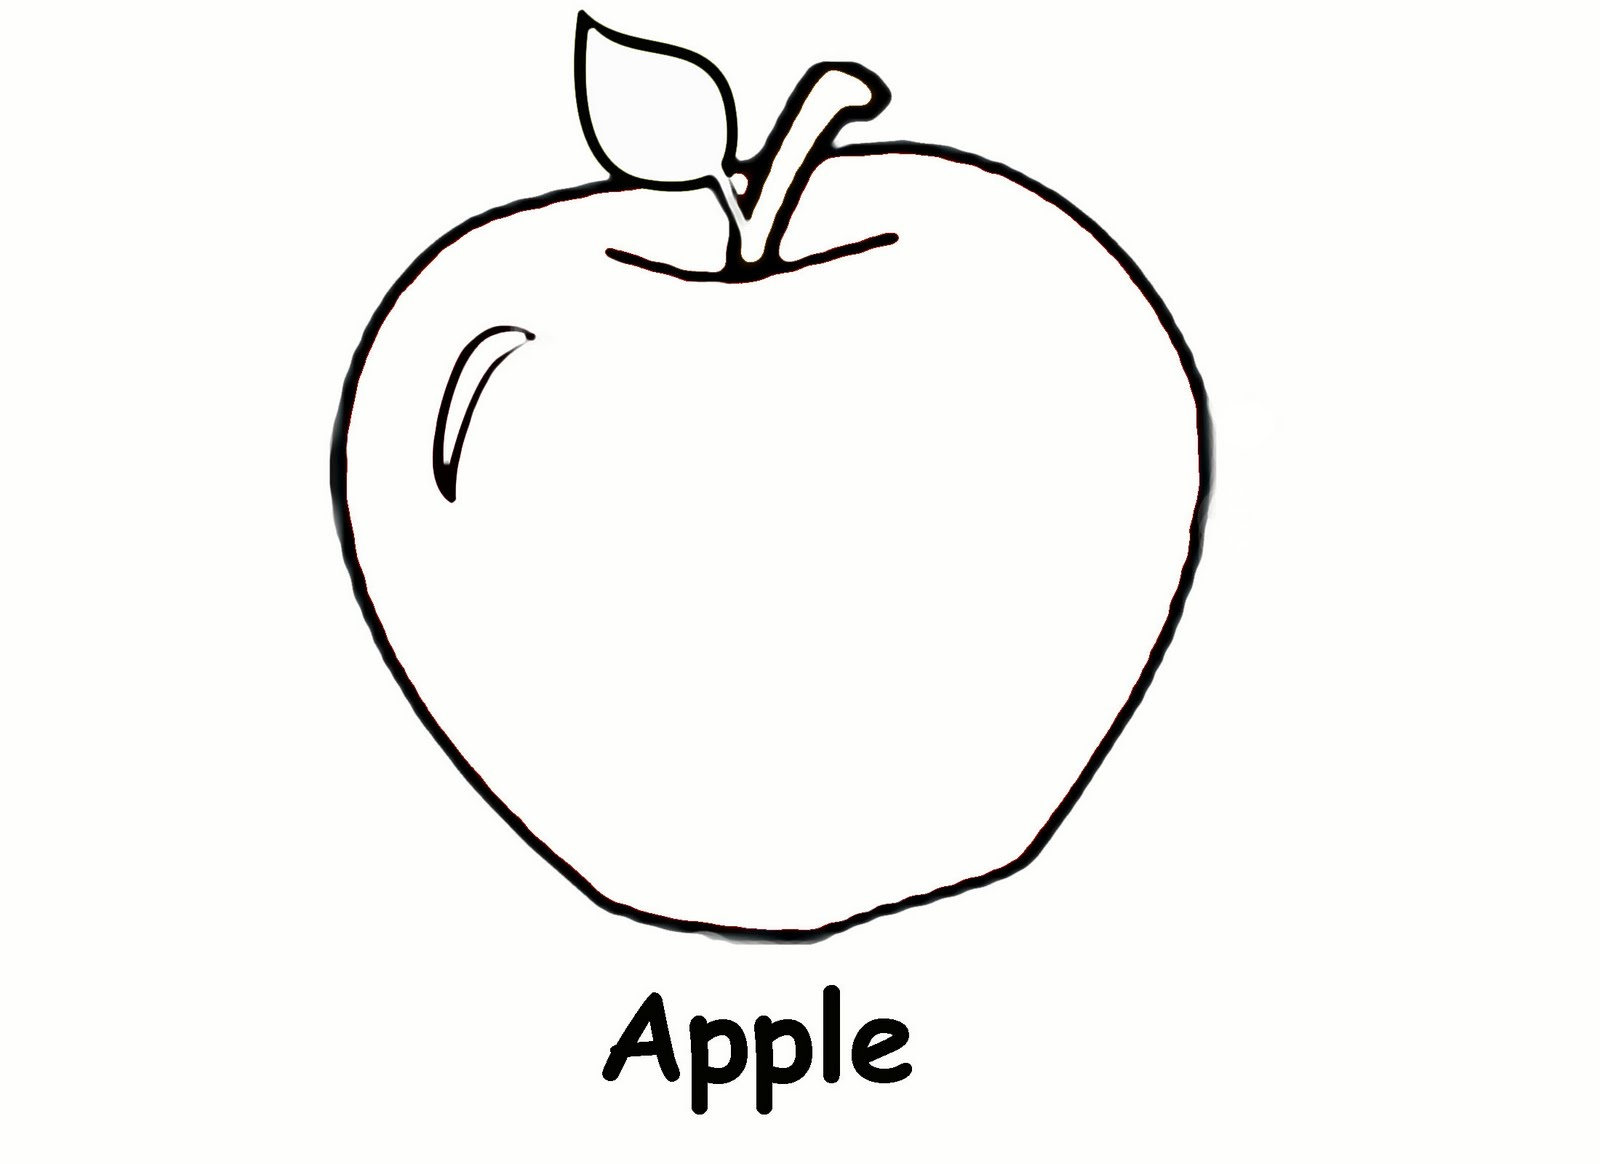 5 Images of Apple Coloring Printables